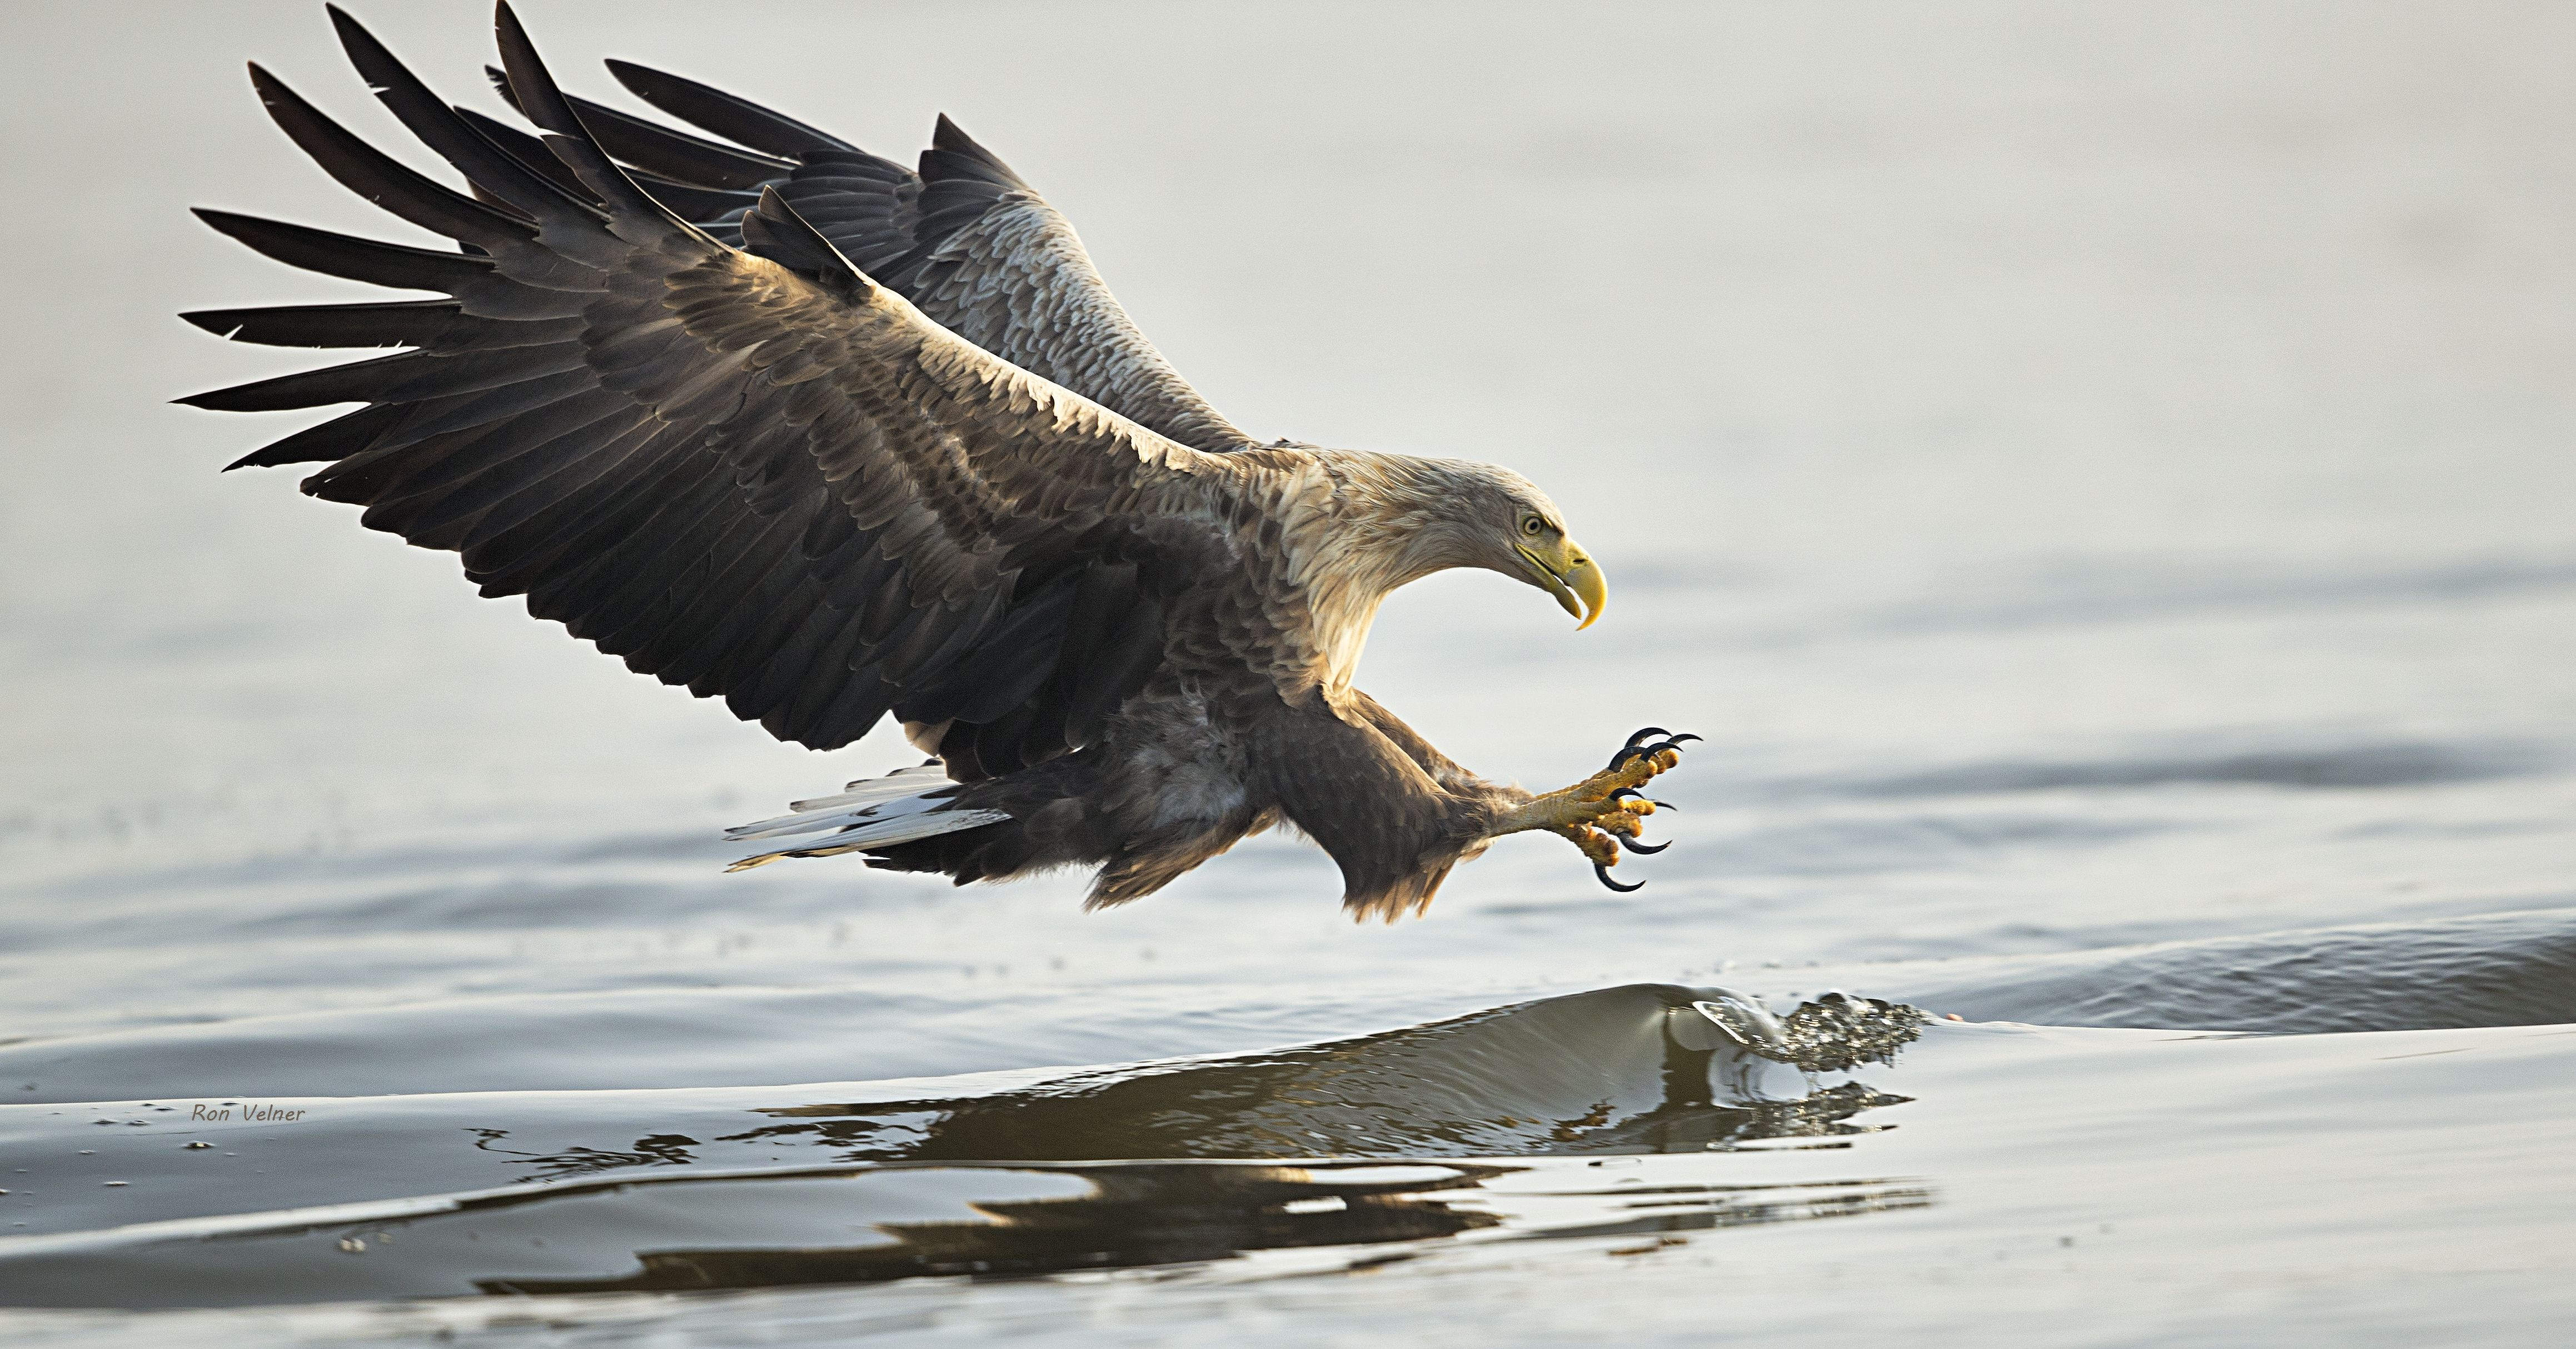 The Rewilding Oder Delta team is supporting the comeback of white-tailed eagles by working to restore fish populations and fish migration in the Stettin Lagoon and associated rivers.